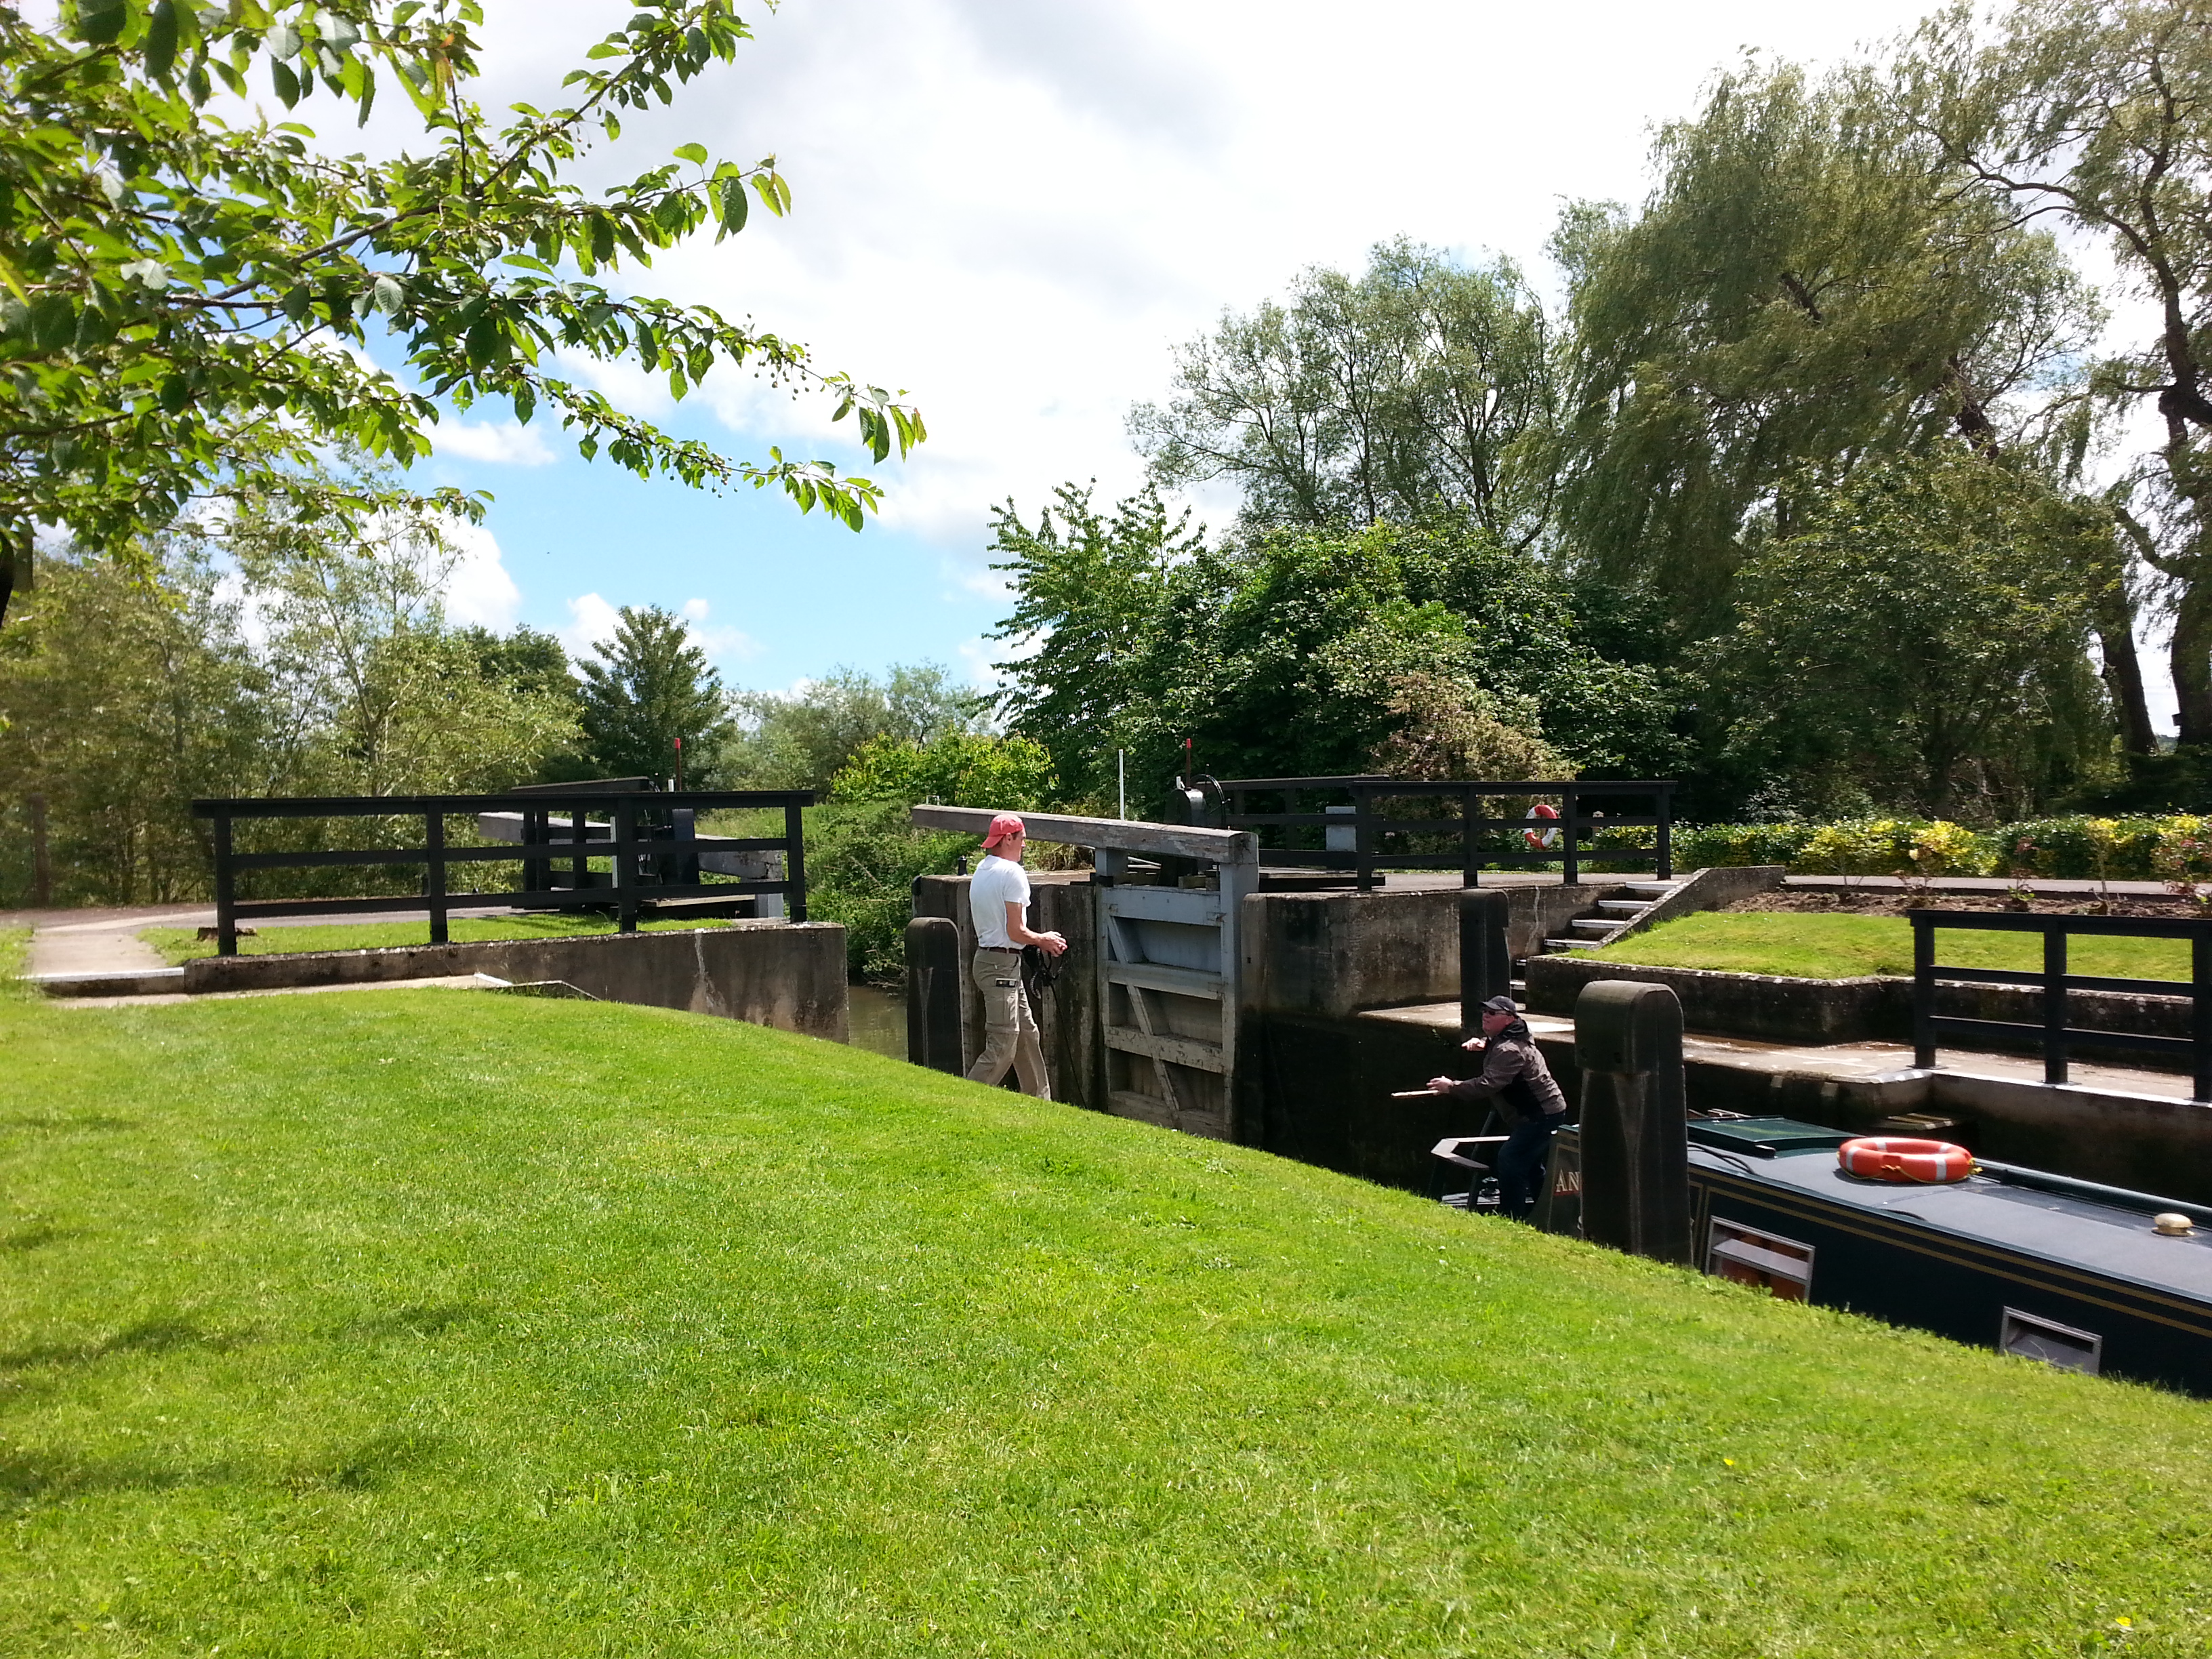 Rushey Lock the 5th lock from the source